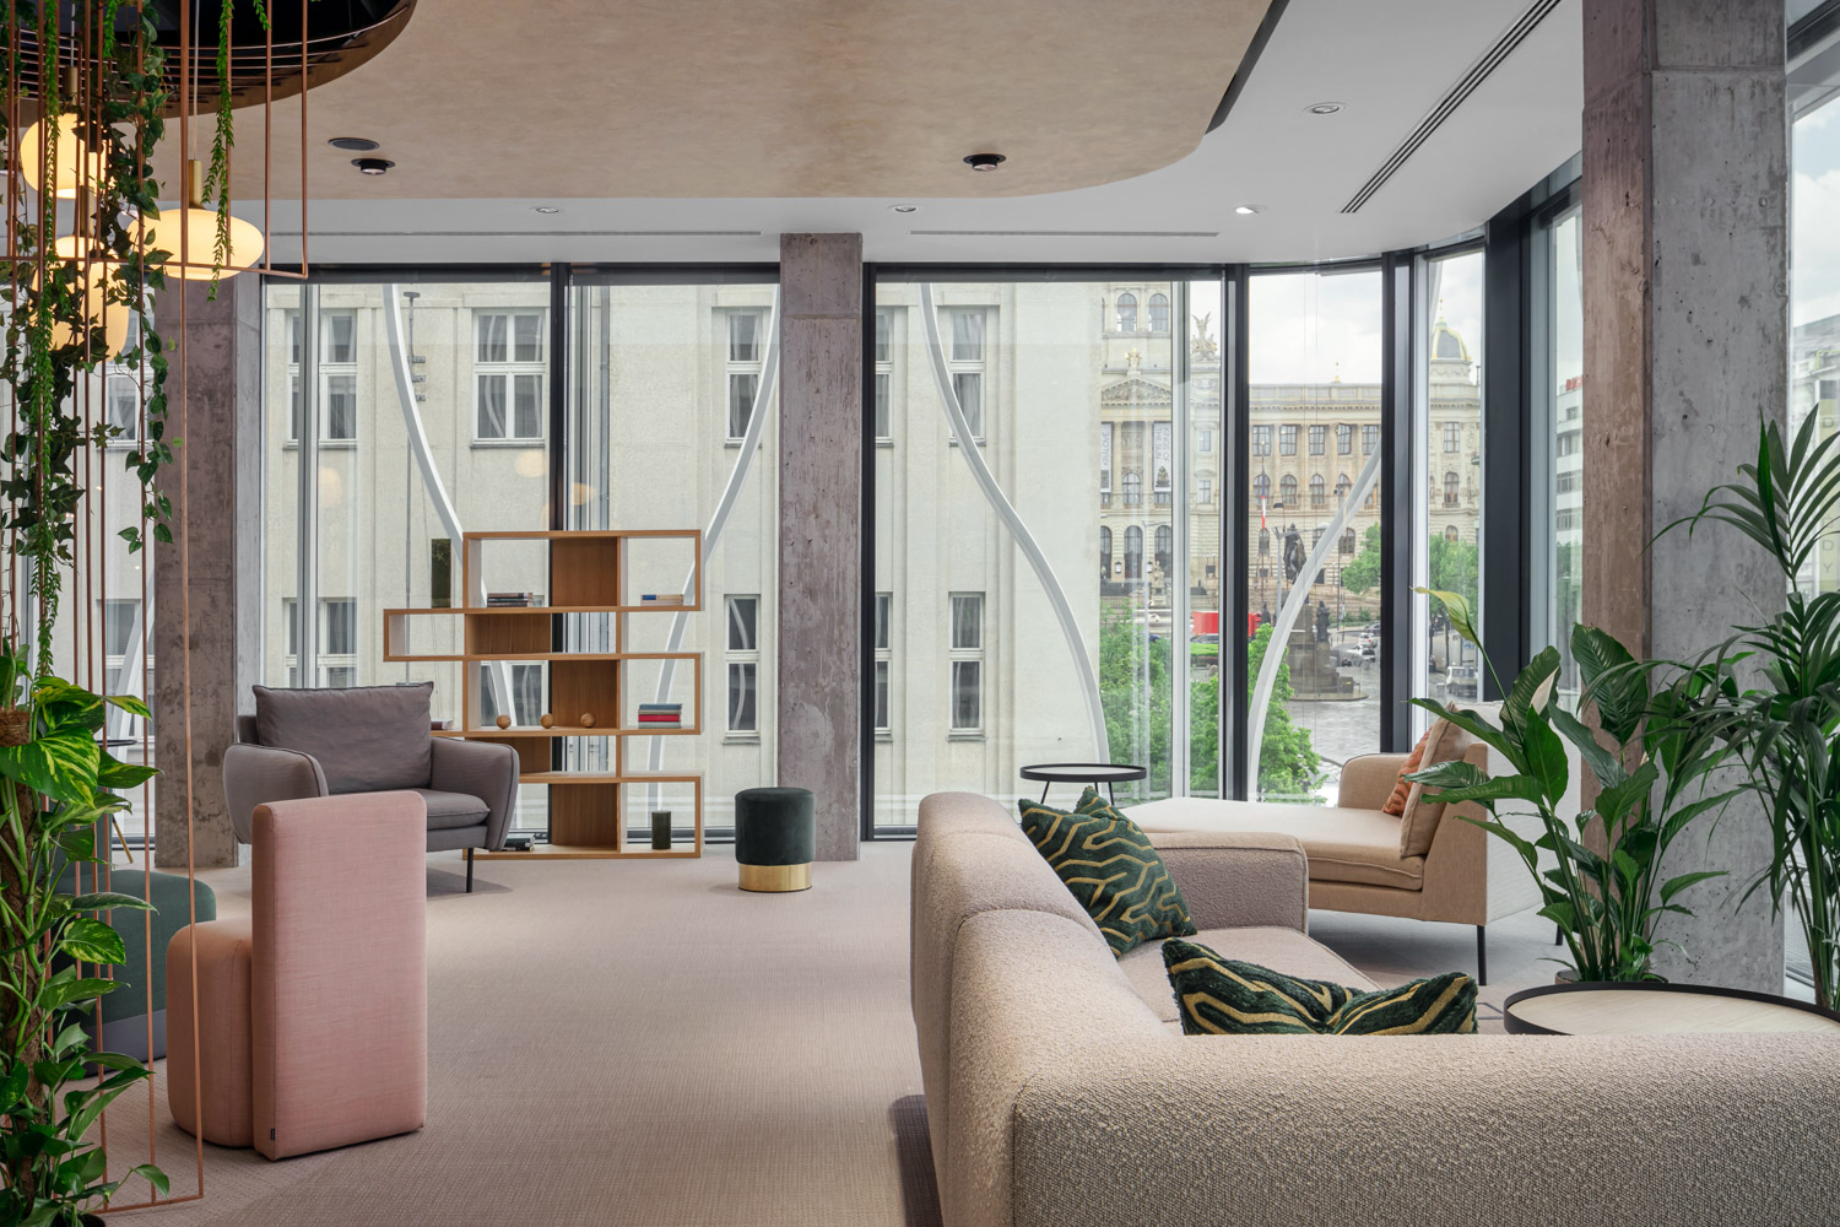 Interior shot of The Flow building with Wenceslas Square in the background shot by Jiri Lizler for Scott Weber